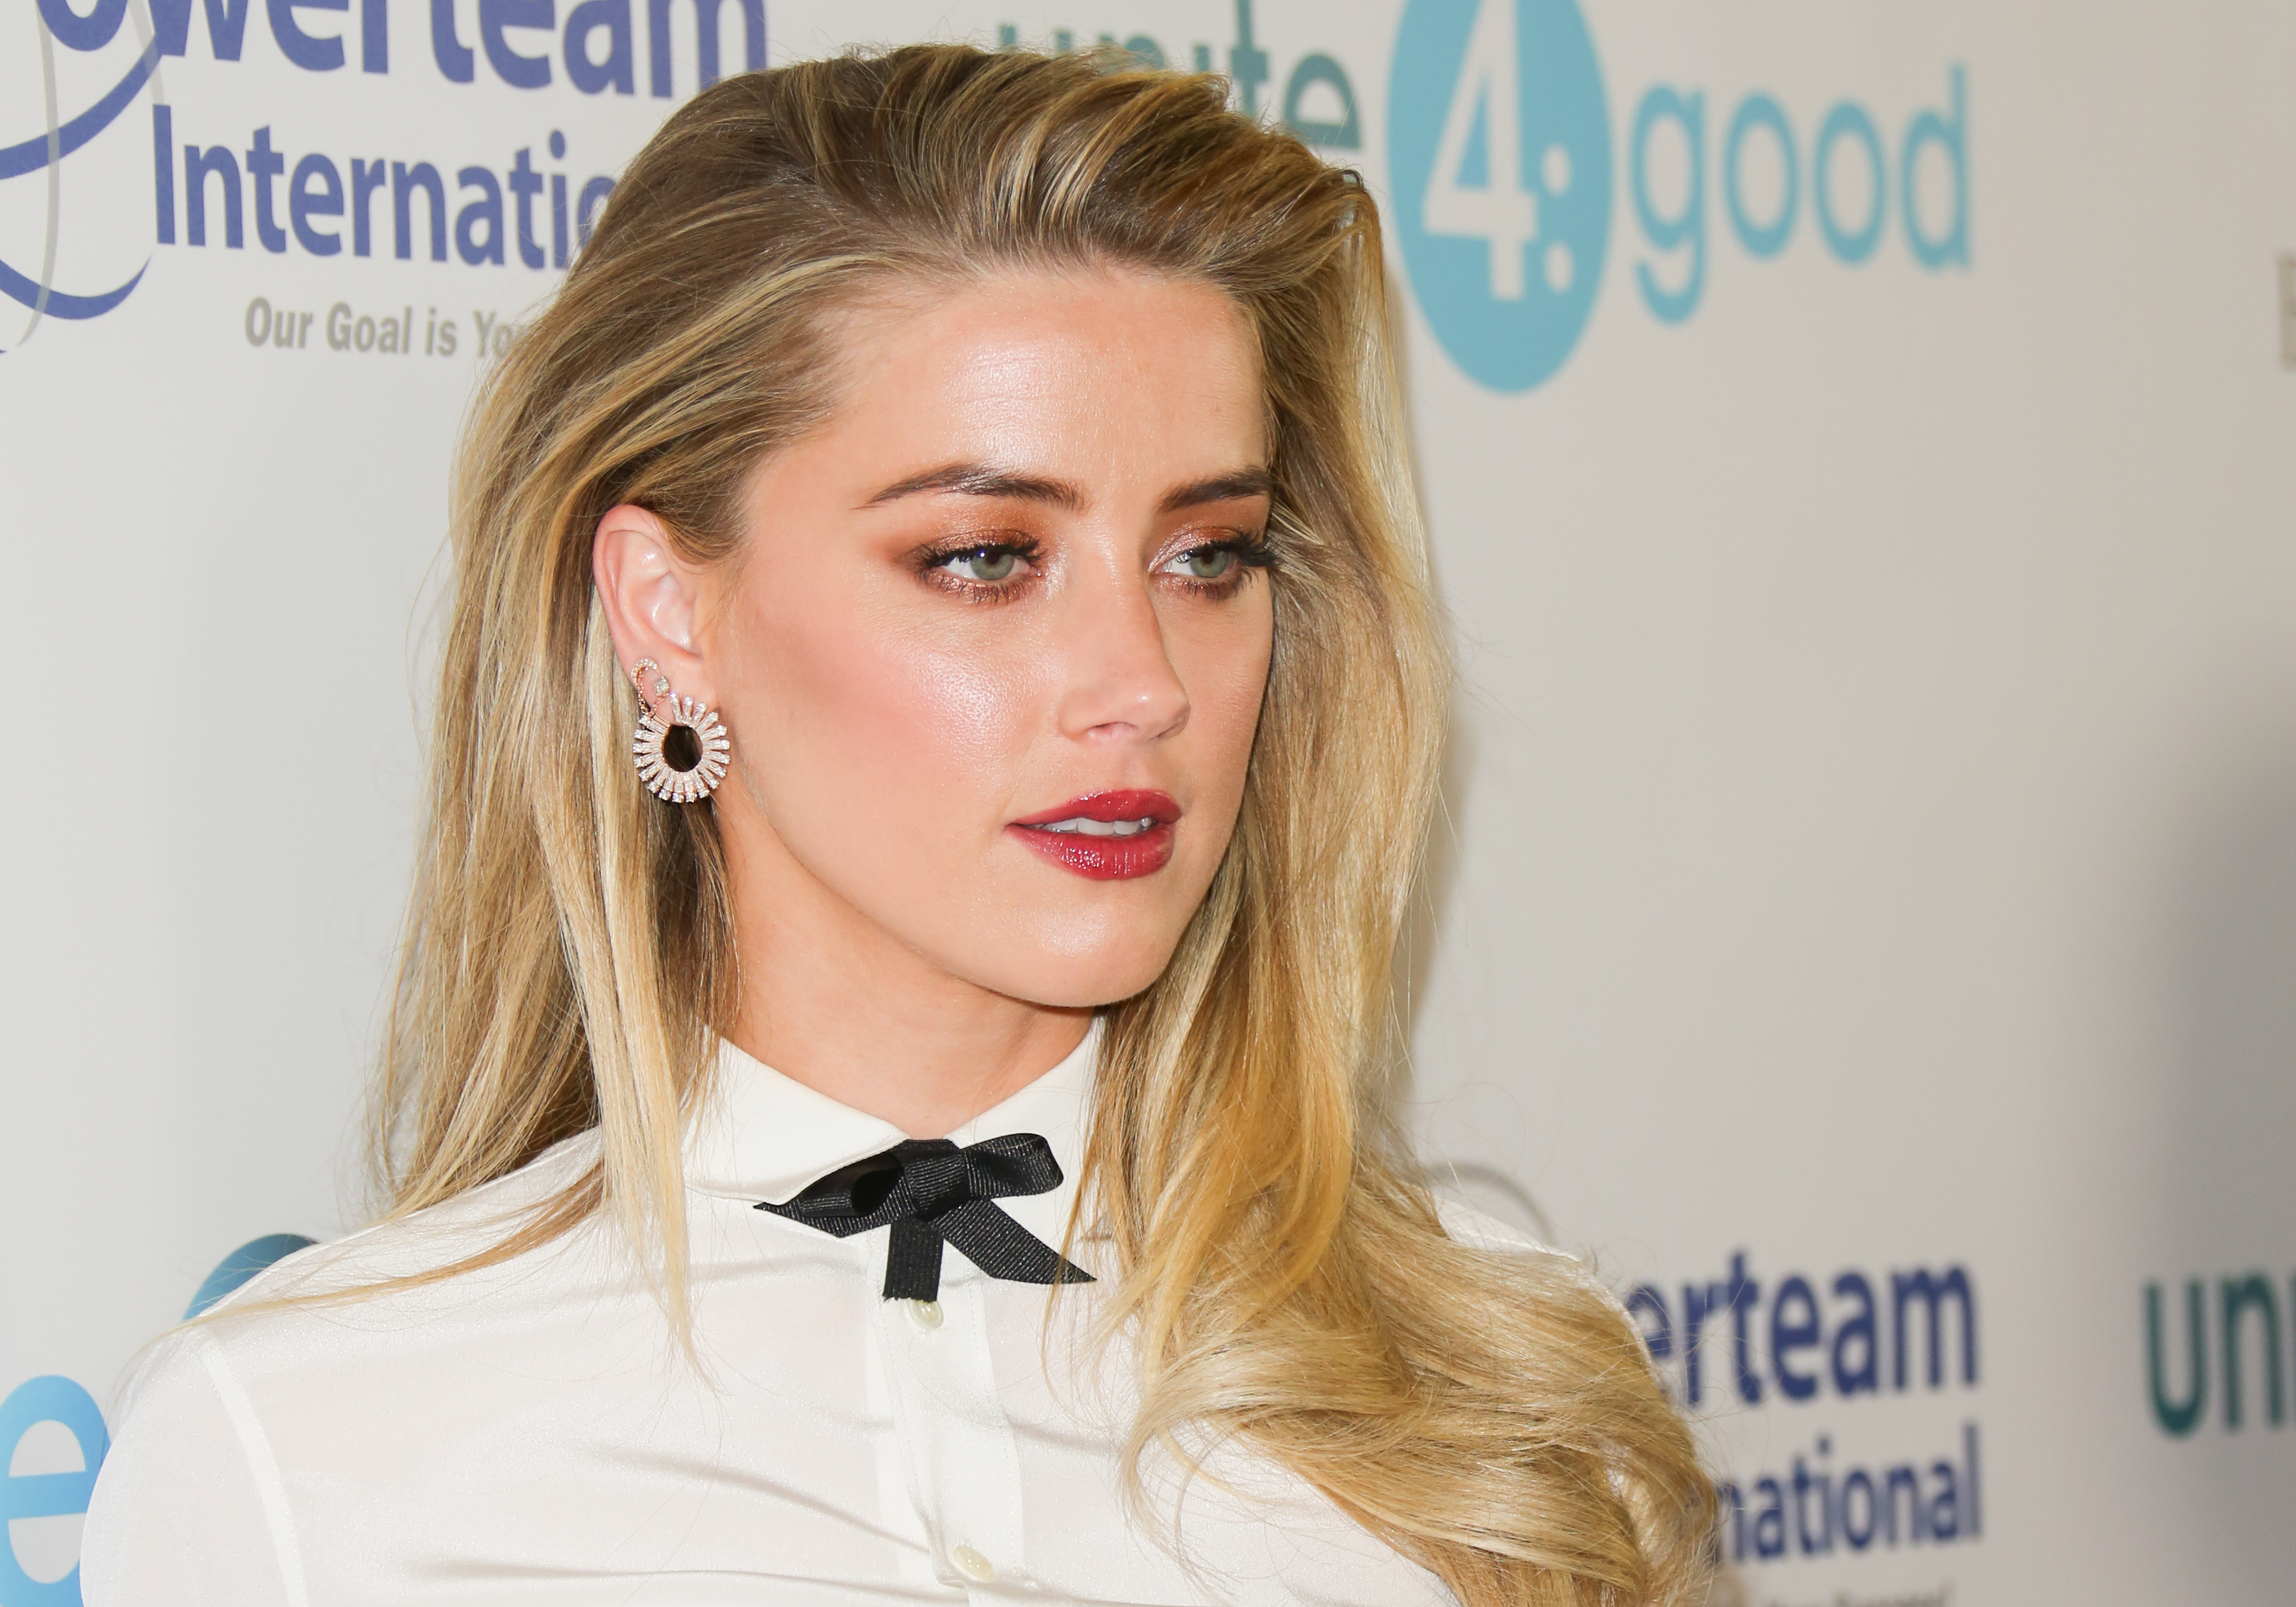 Amber Heard Just Confirmed Her Romance With Tech